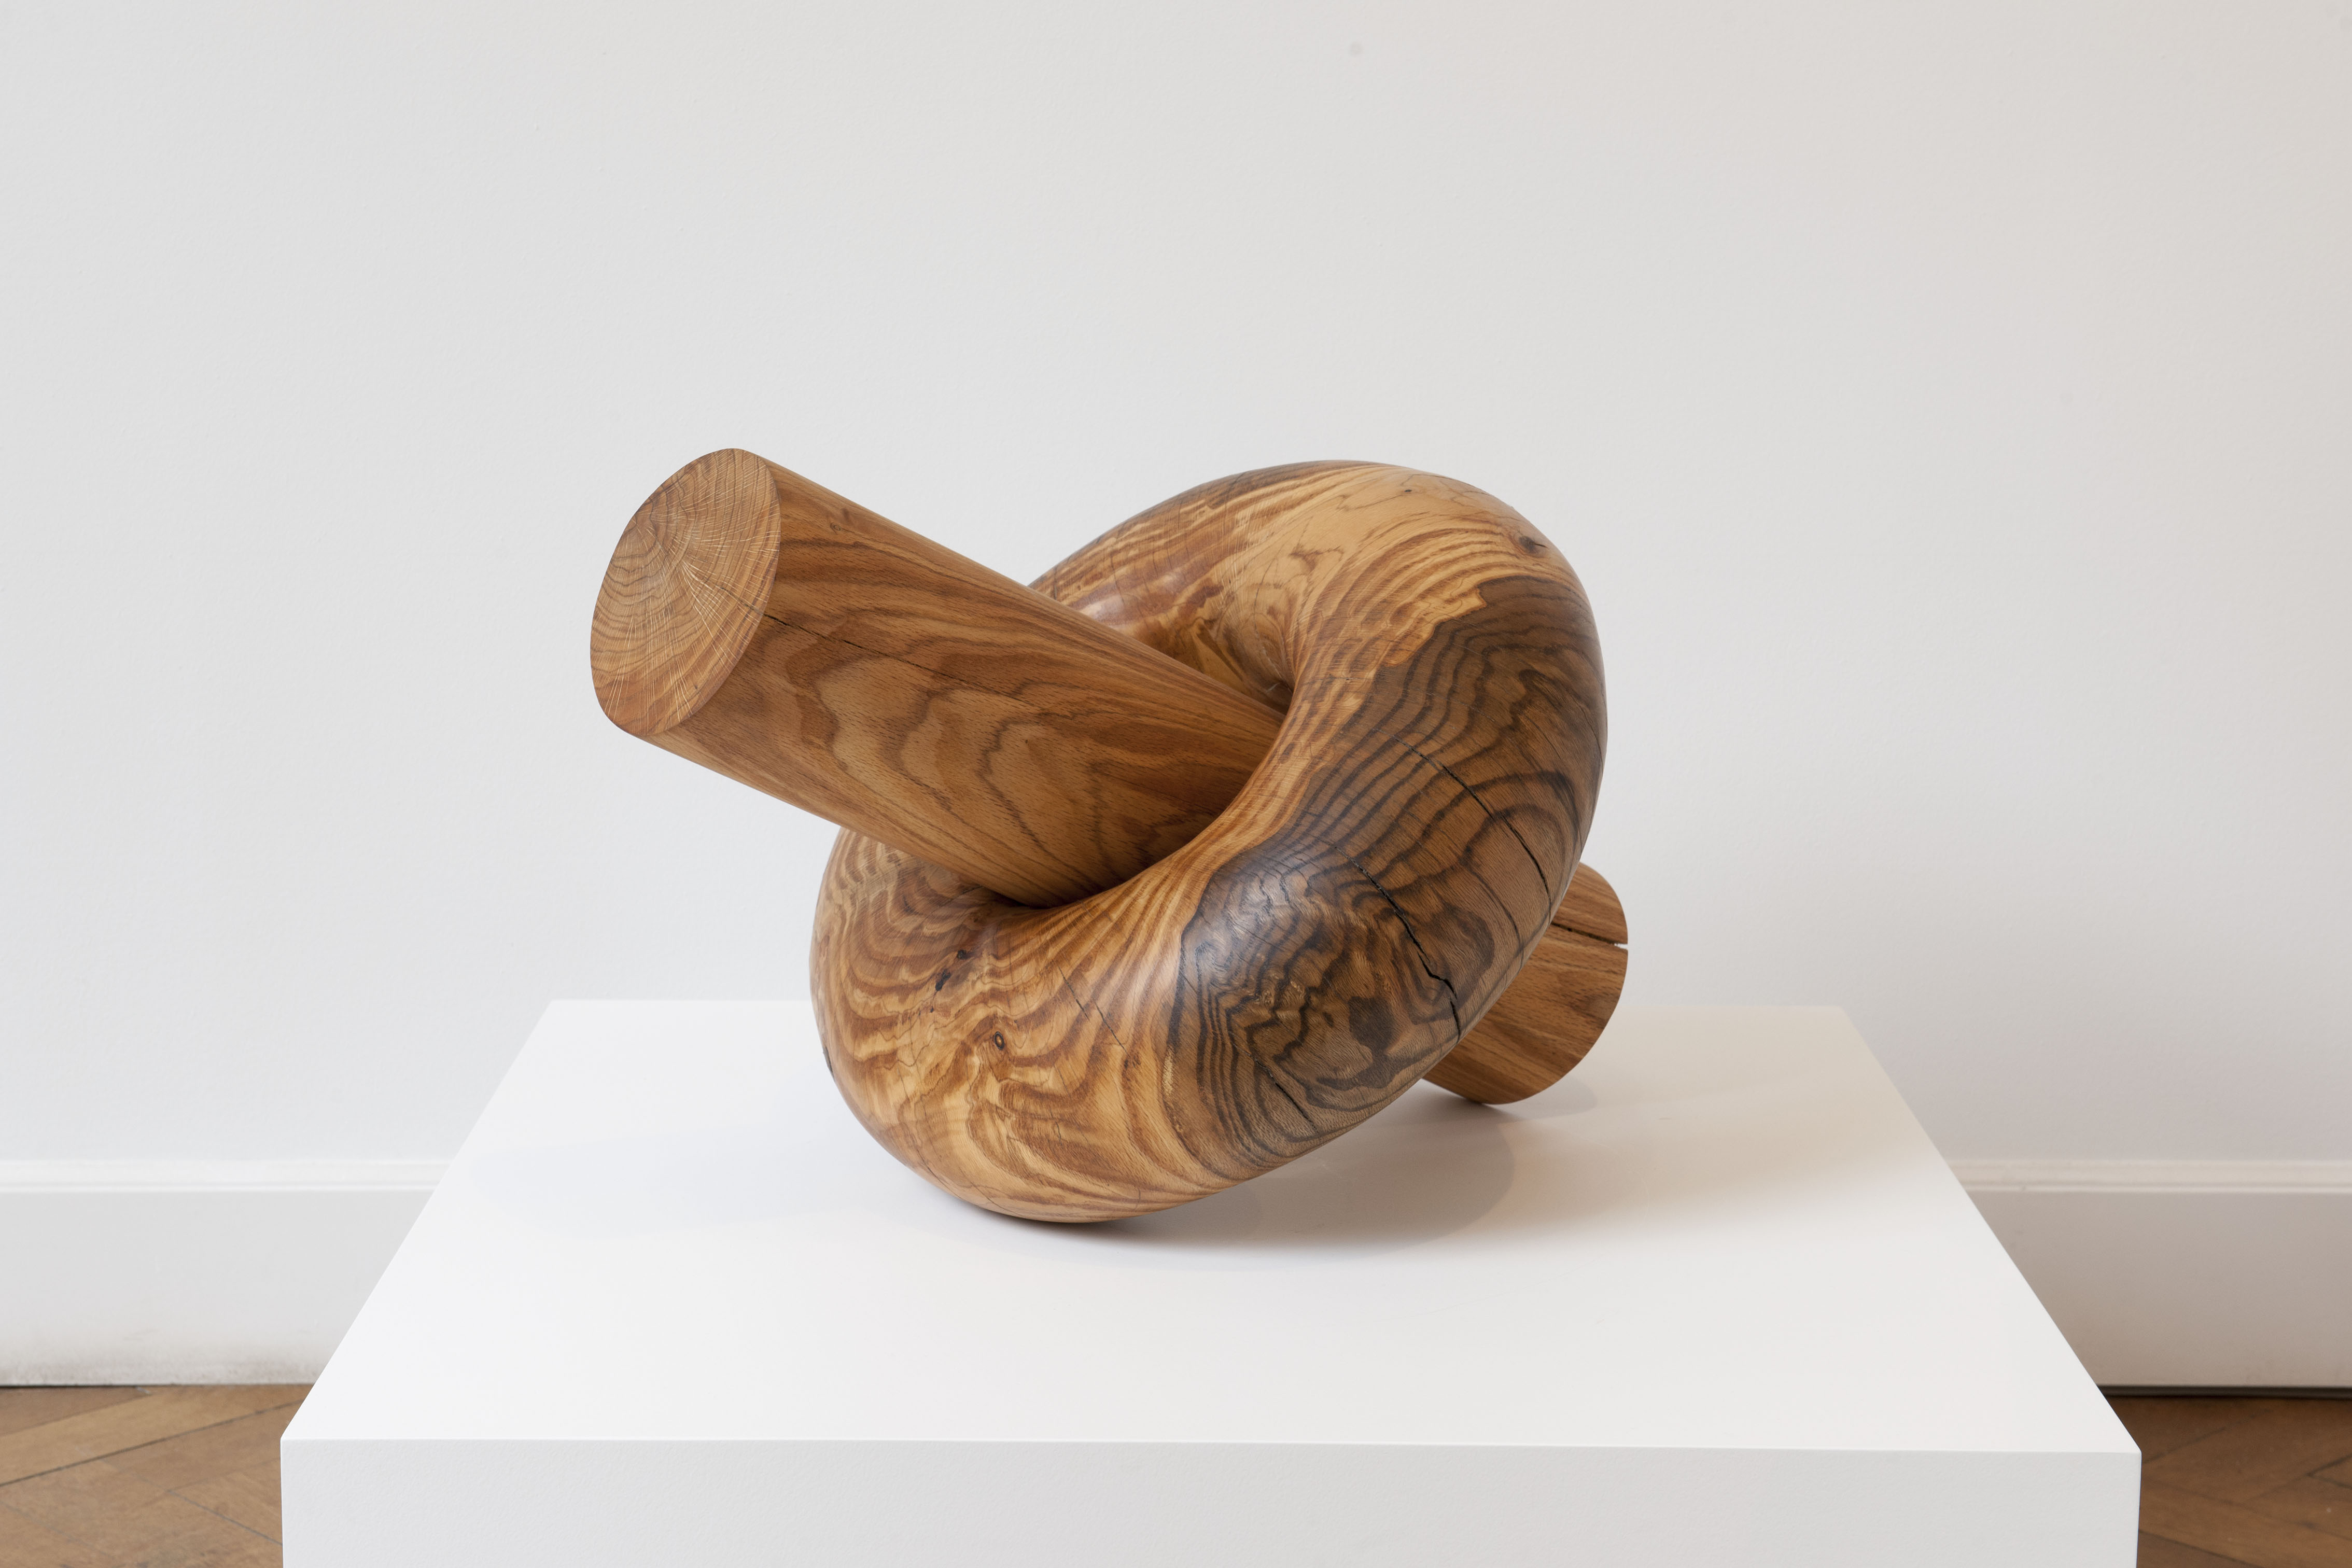 Claudia Comte, Sculpture Object 34